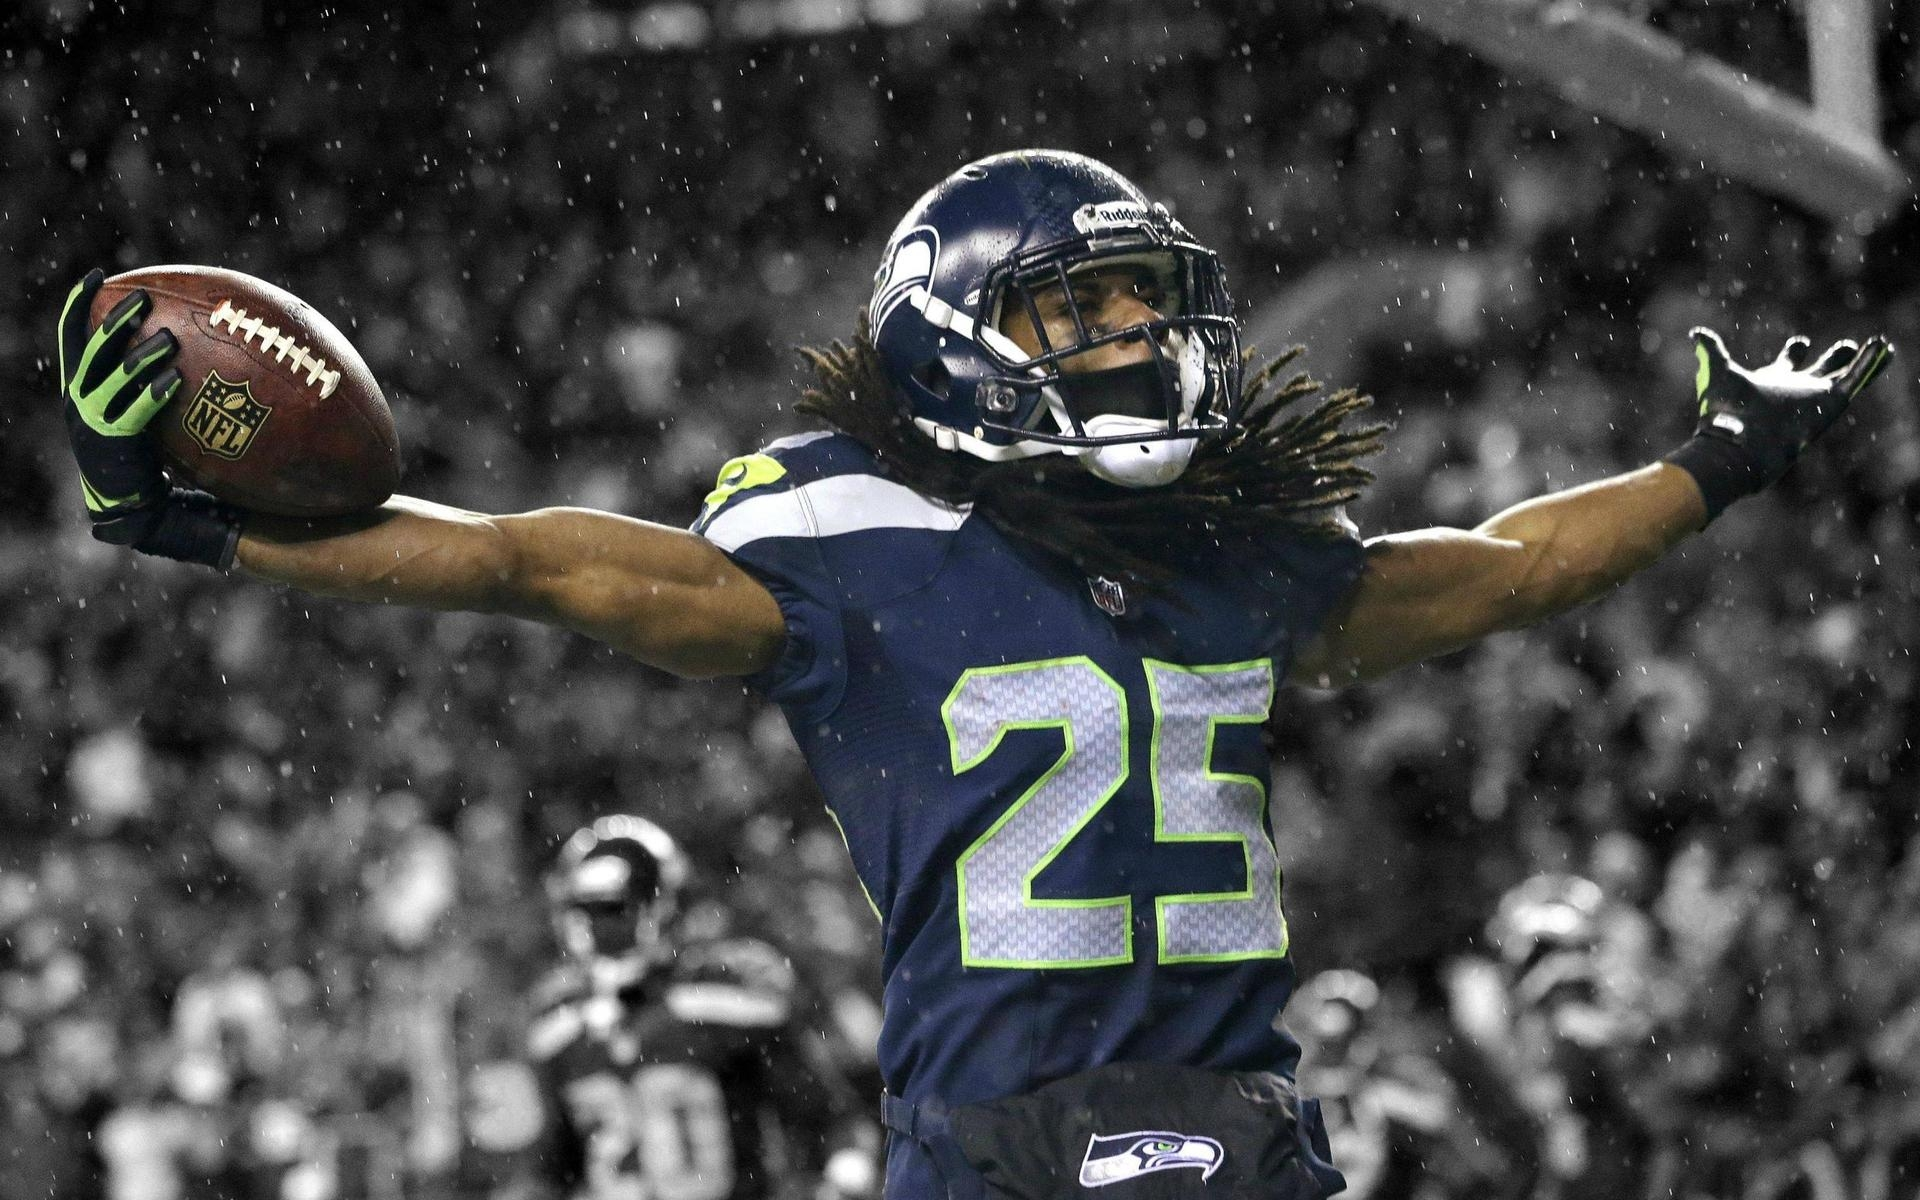 Richard Sherman Seahawks for 1920 x 1200 widescreen resolution